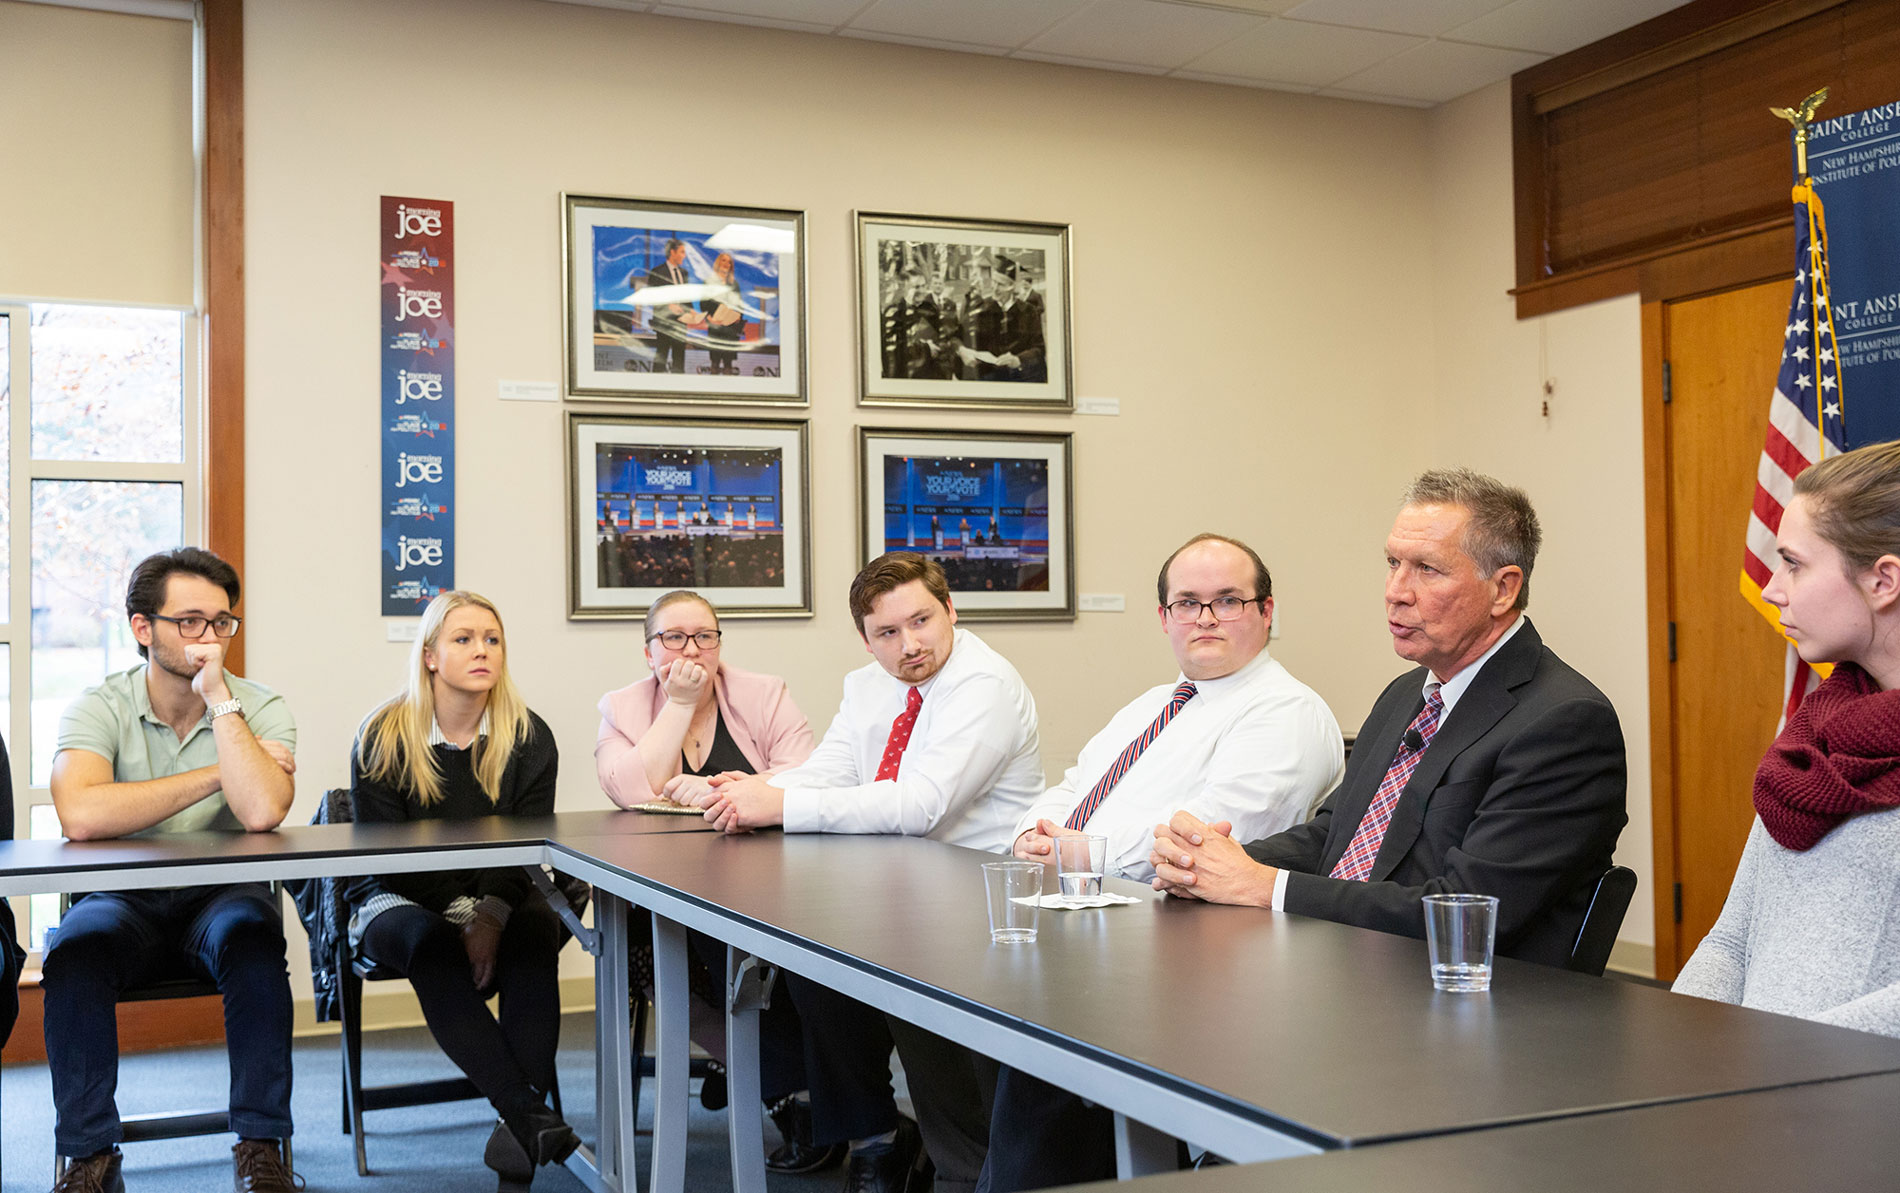 John Kasich speaks with students